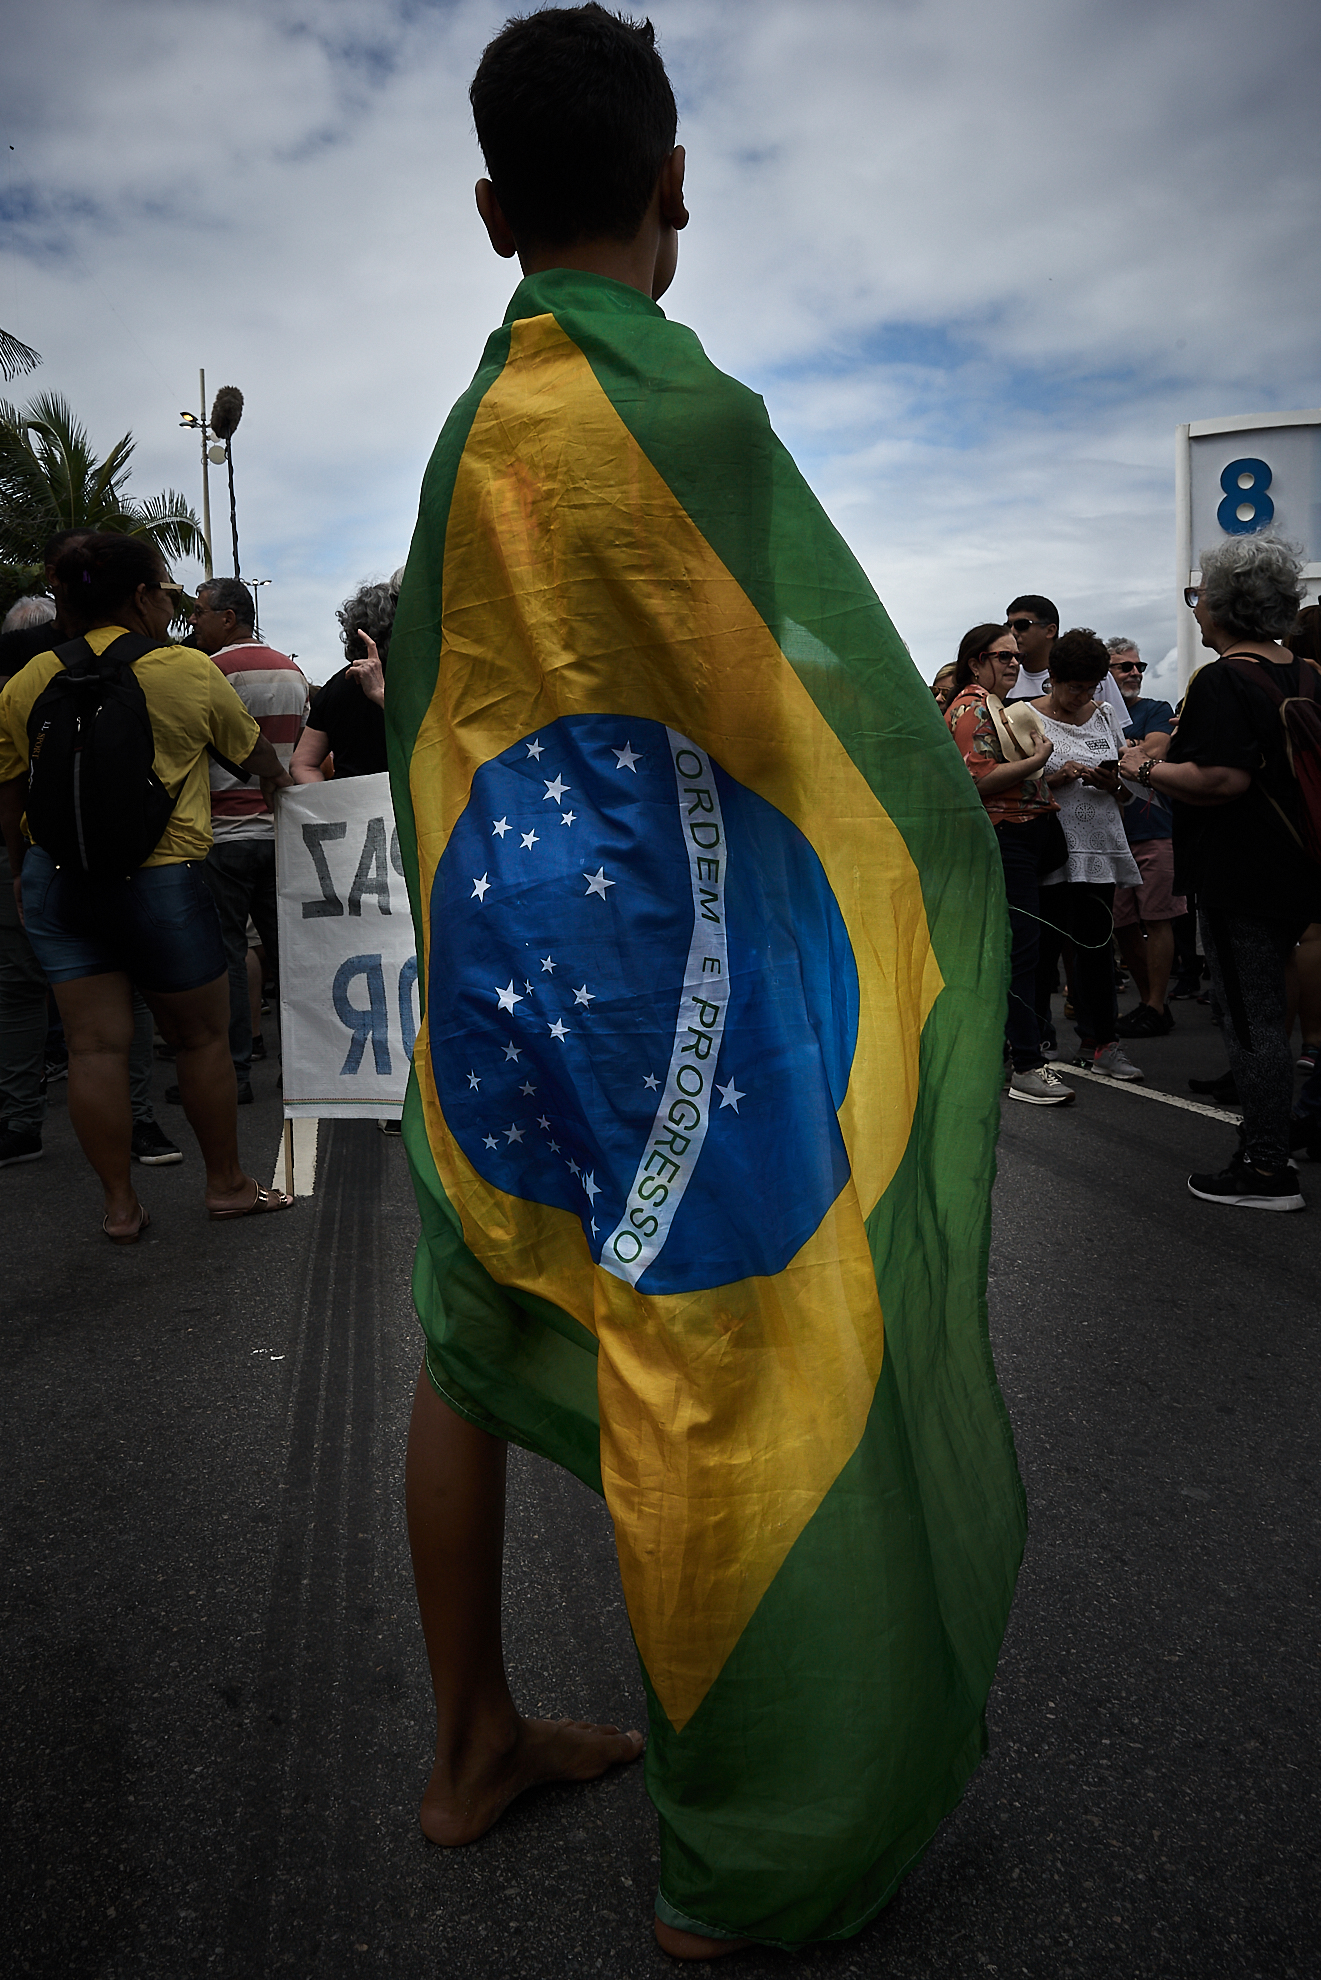 A boy stands draped in Brazil's flag at a protest against the increased violence in Rio's Favelas. (Photo: C.H. Gardiner)